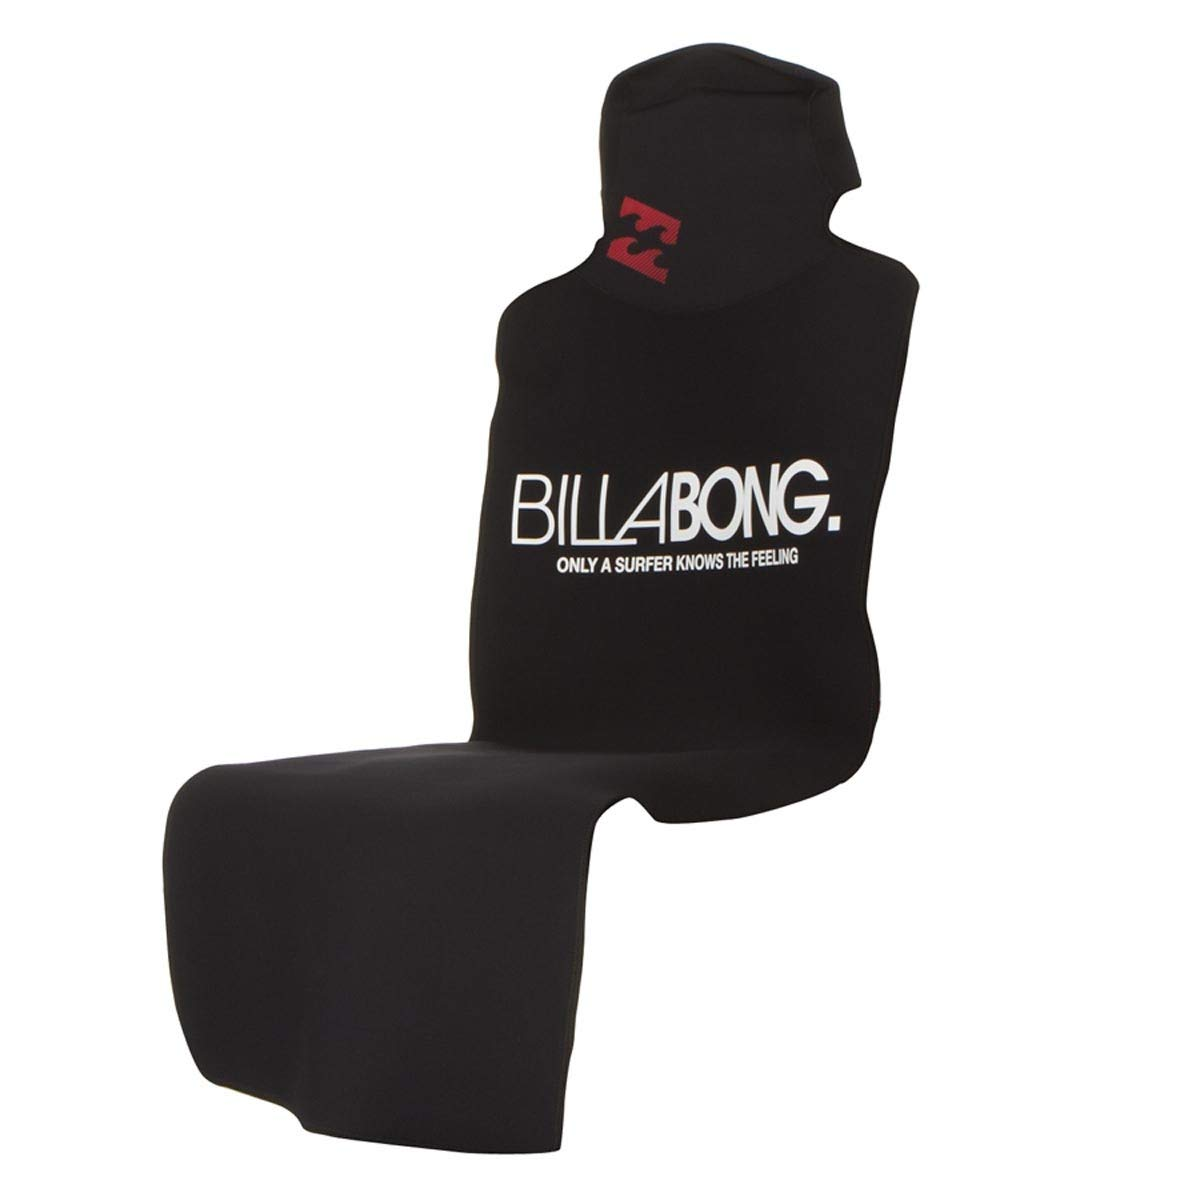 Billabong Wetsuit Car Seat Cover